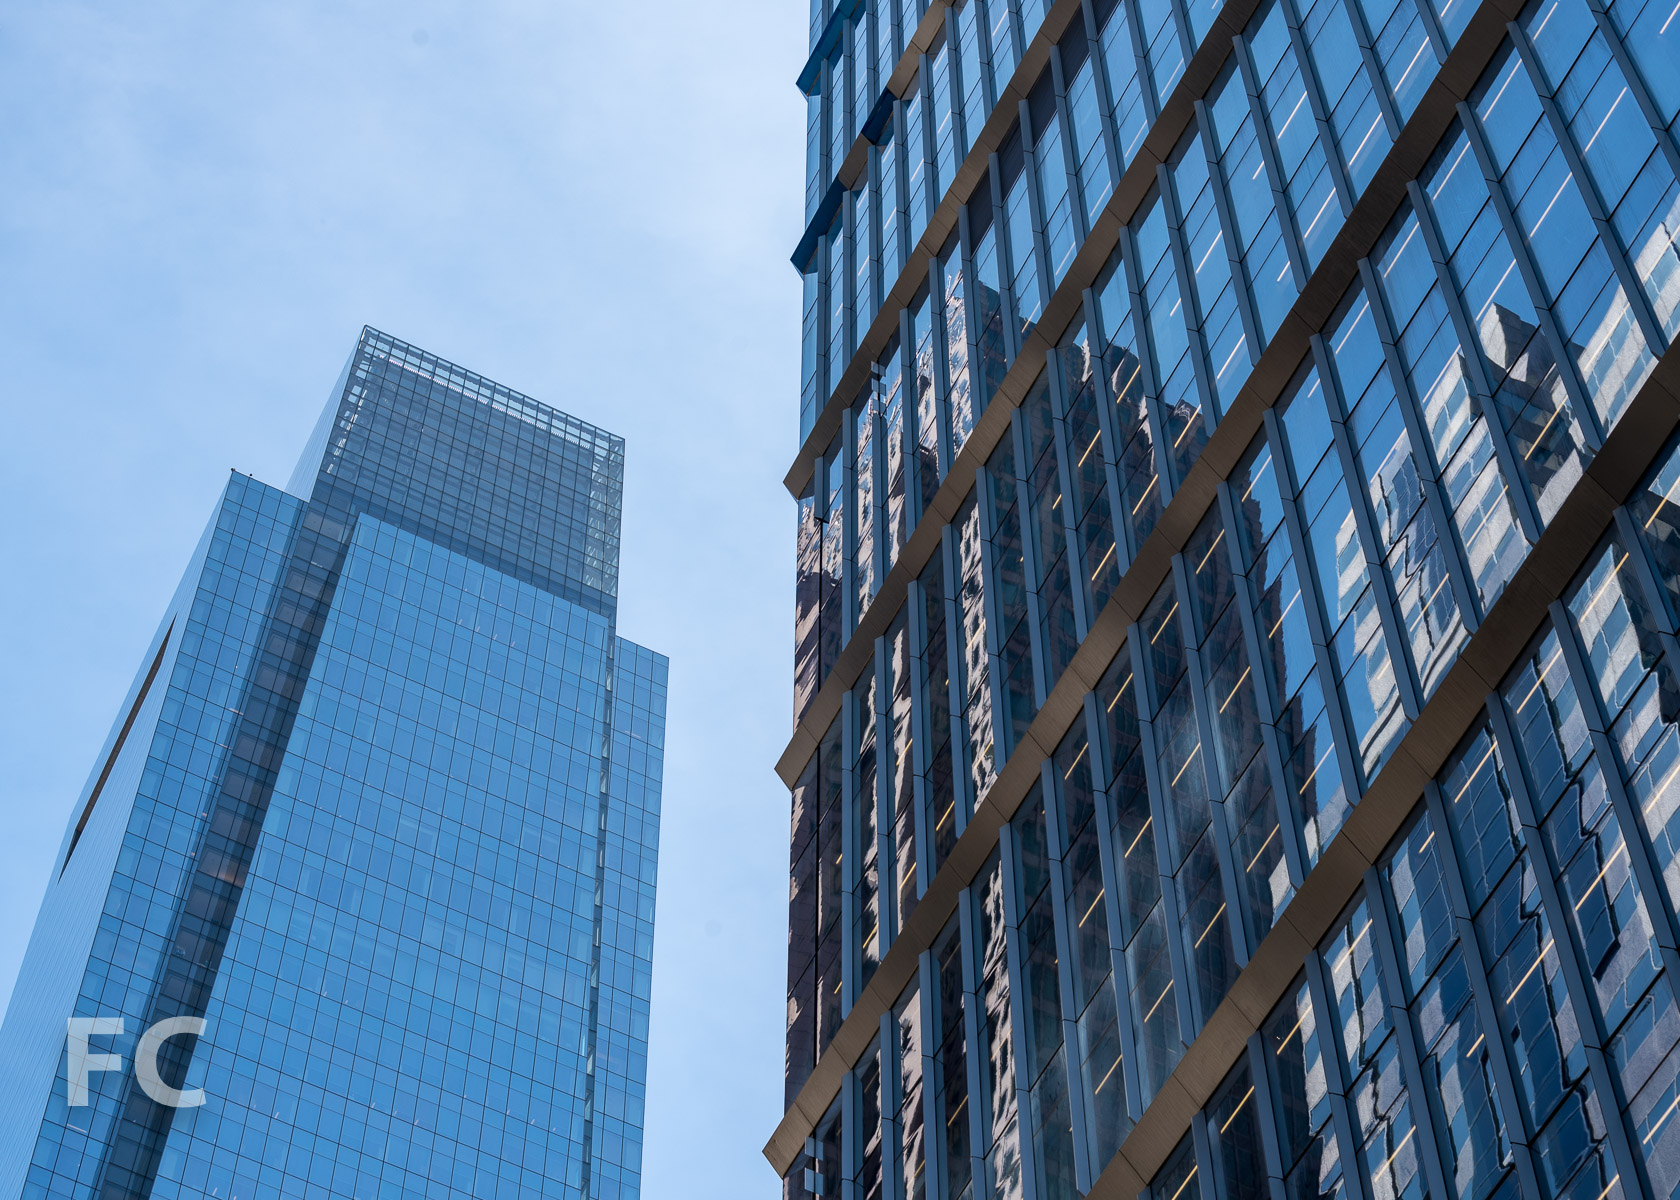 Close-up of the north tower facade (right) and the west facade of the Comcast Tower (left).